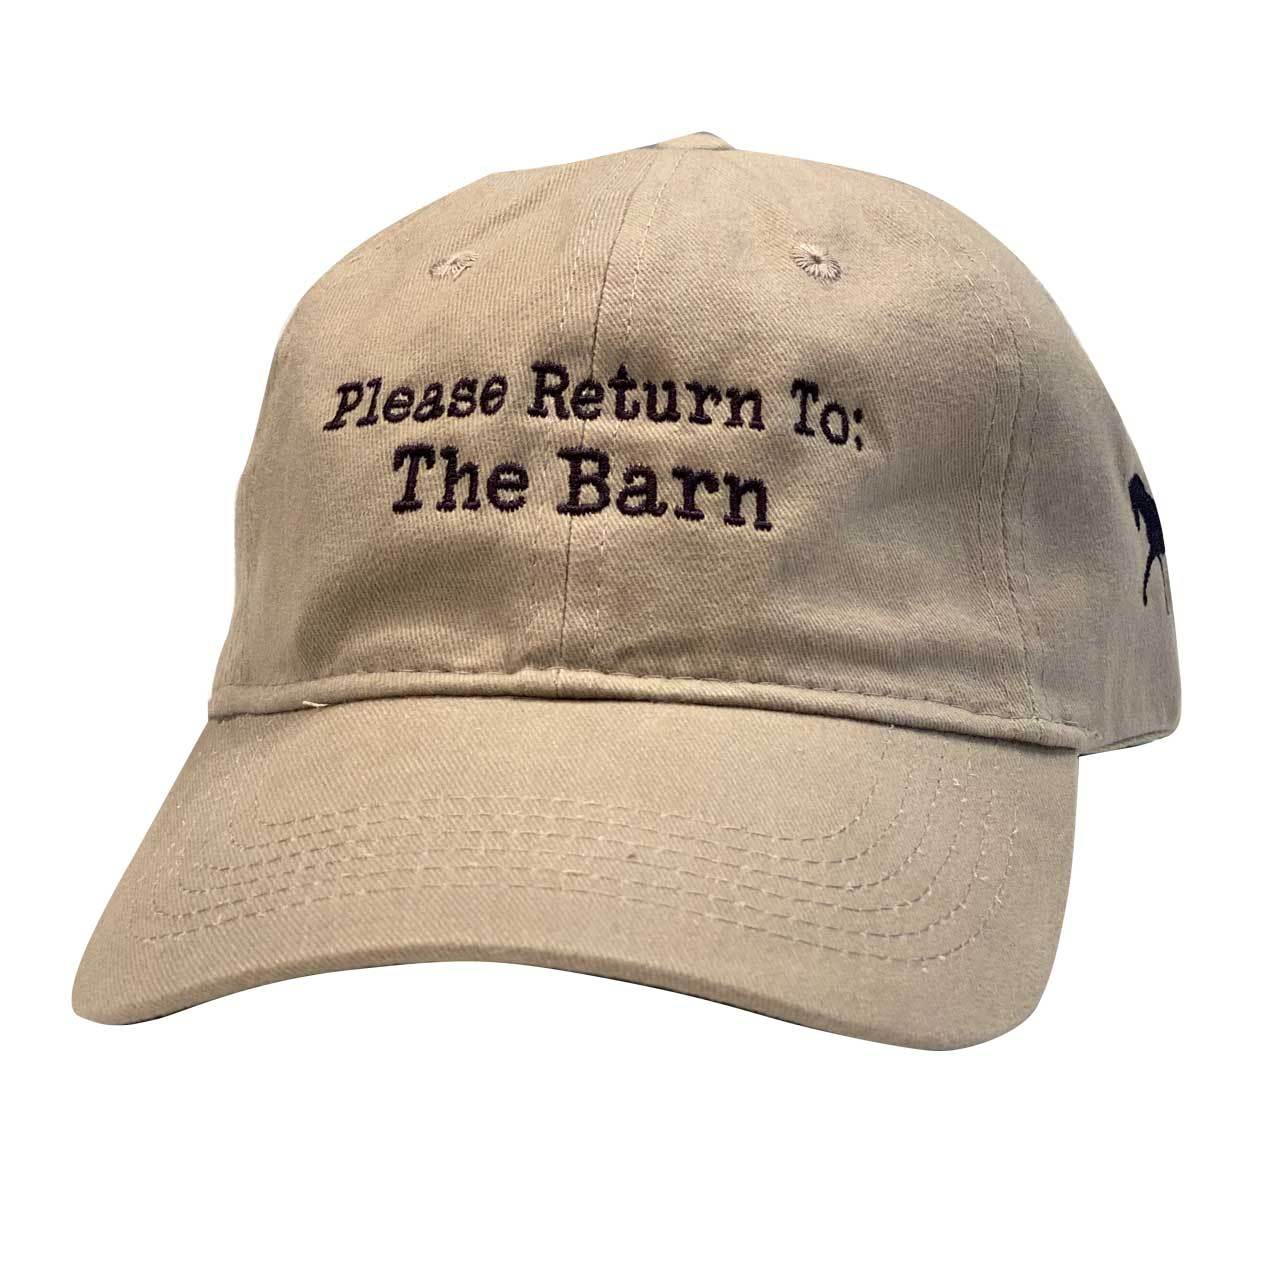 Please Return to Barn Cap